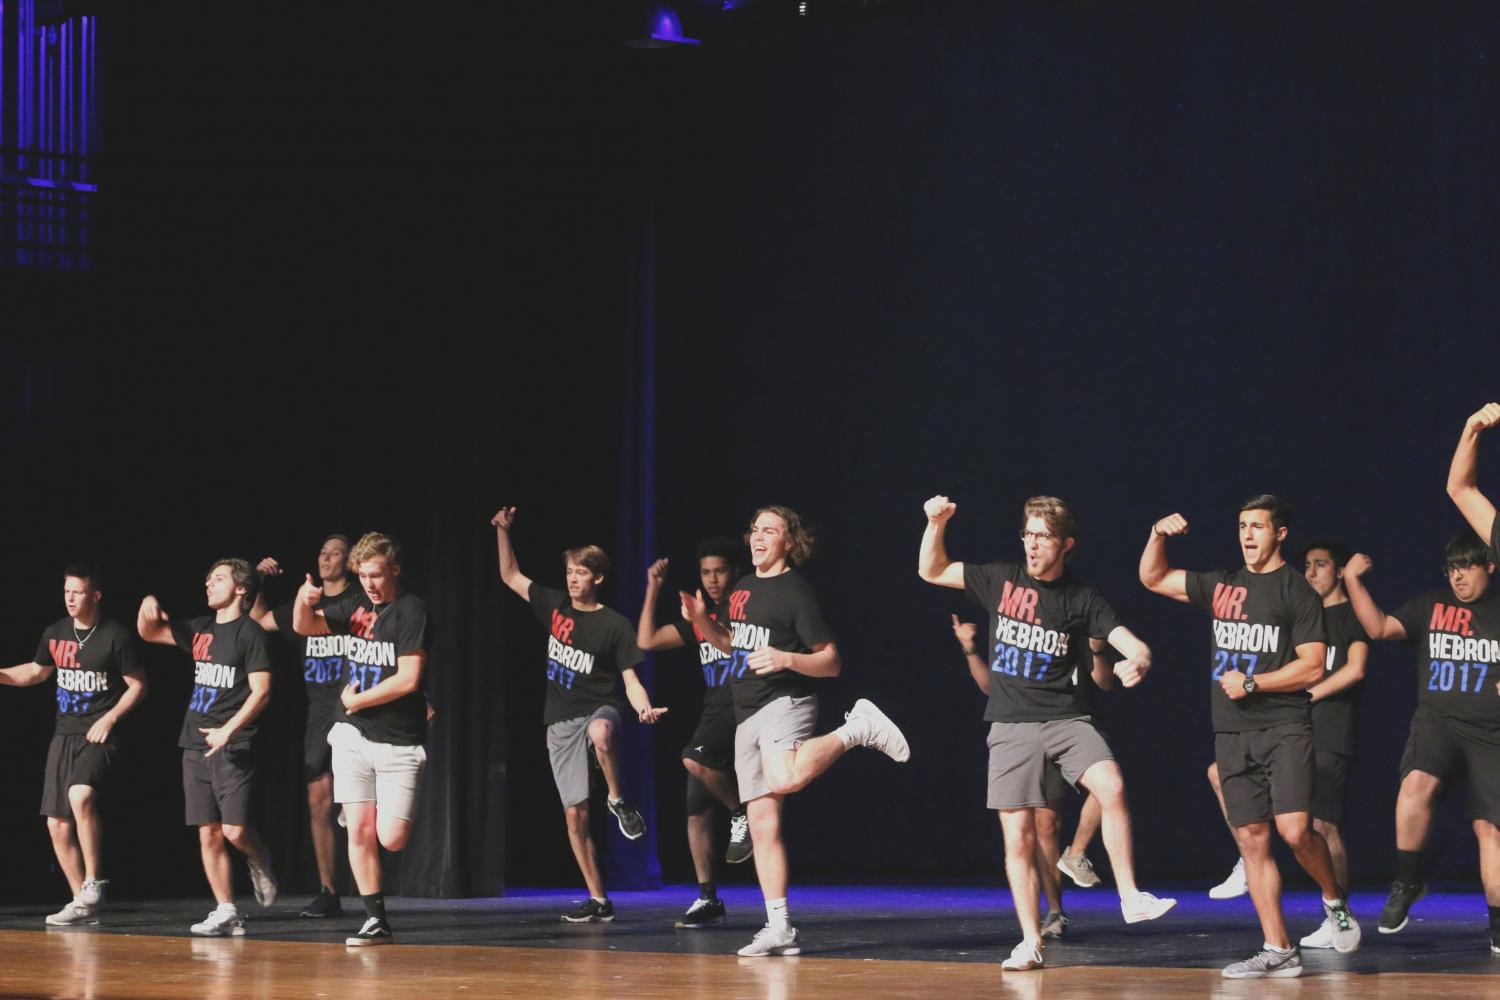 Mr. Hebron contestants performing a group dance.